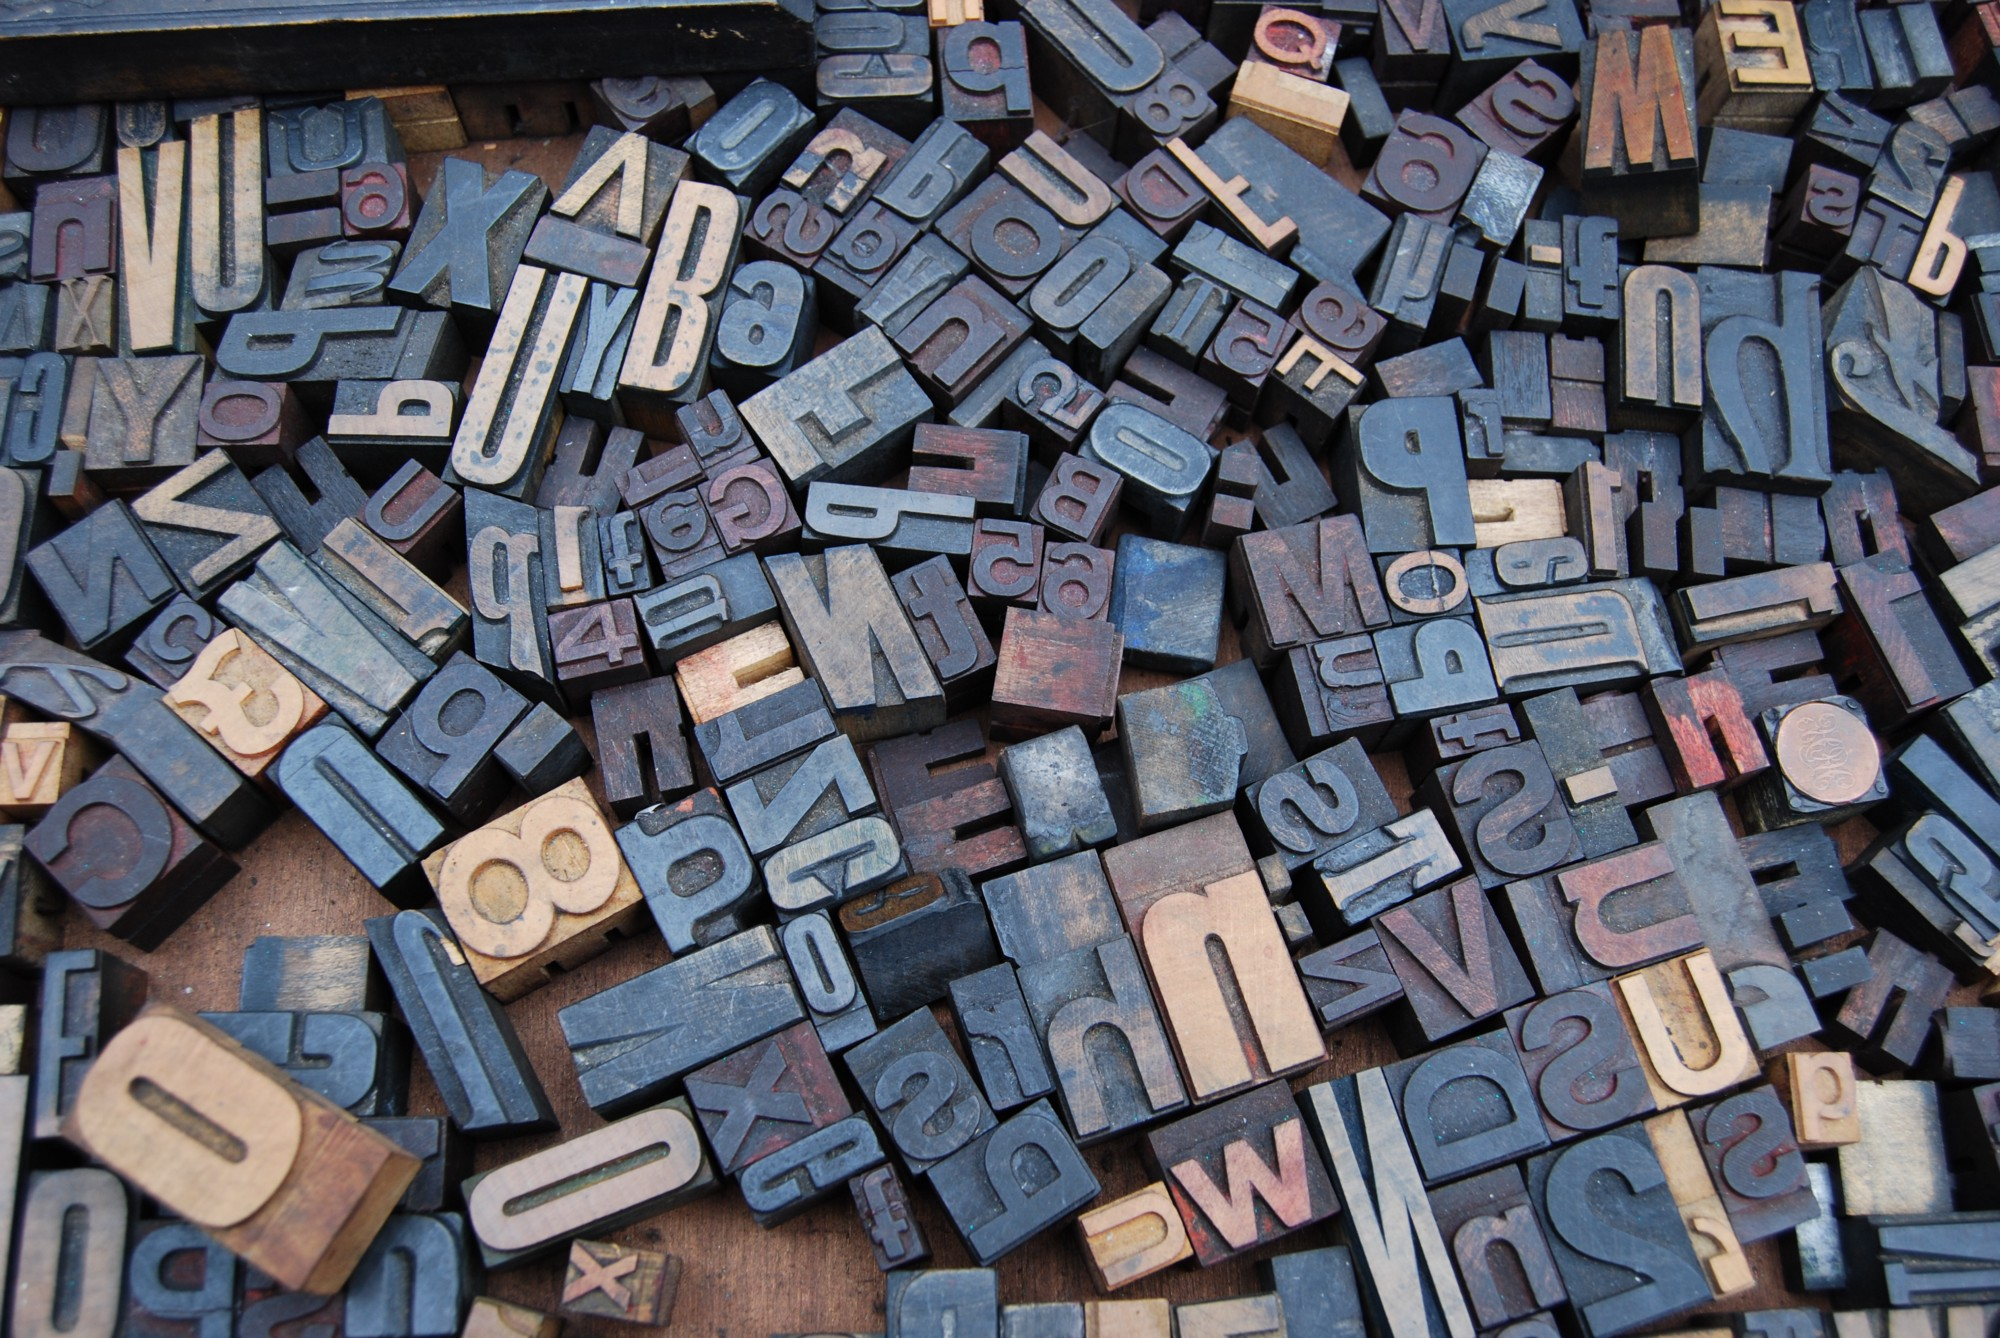 Letters and numbers on wooden stencils.